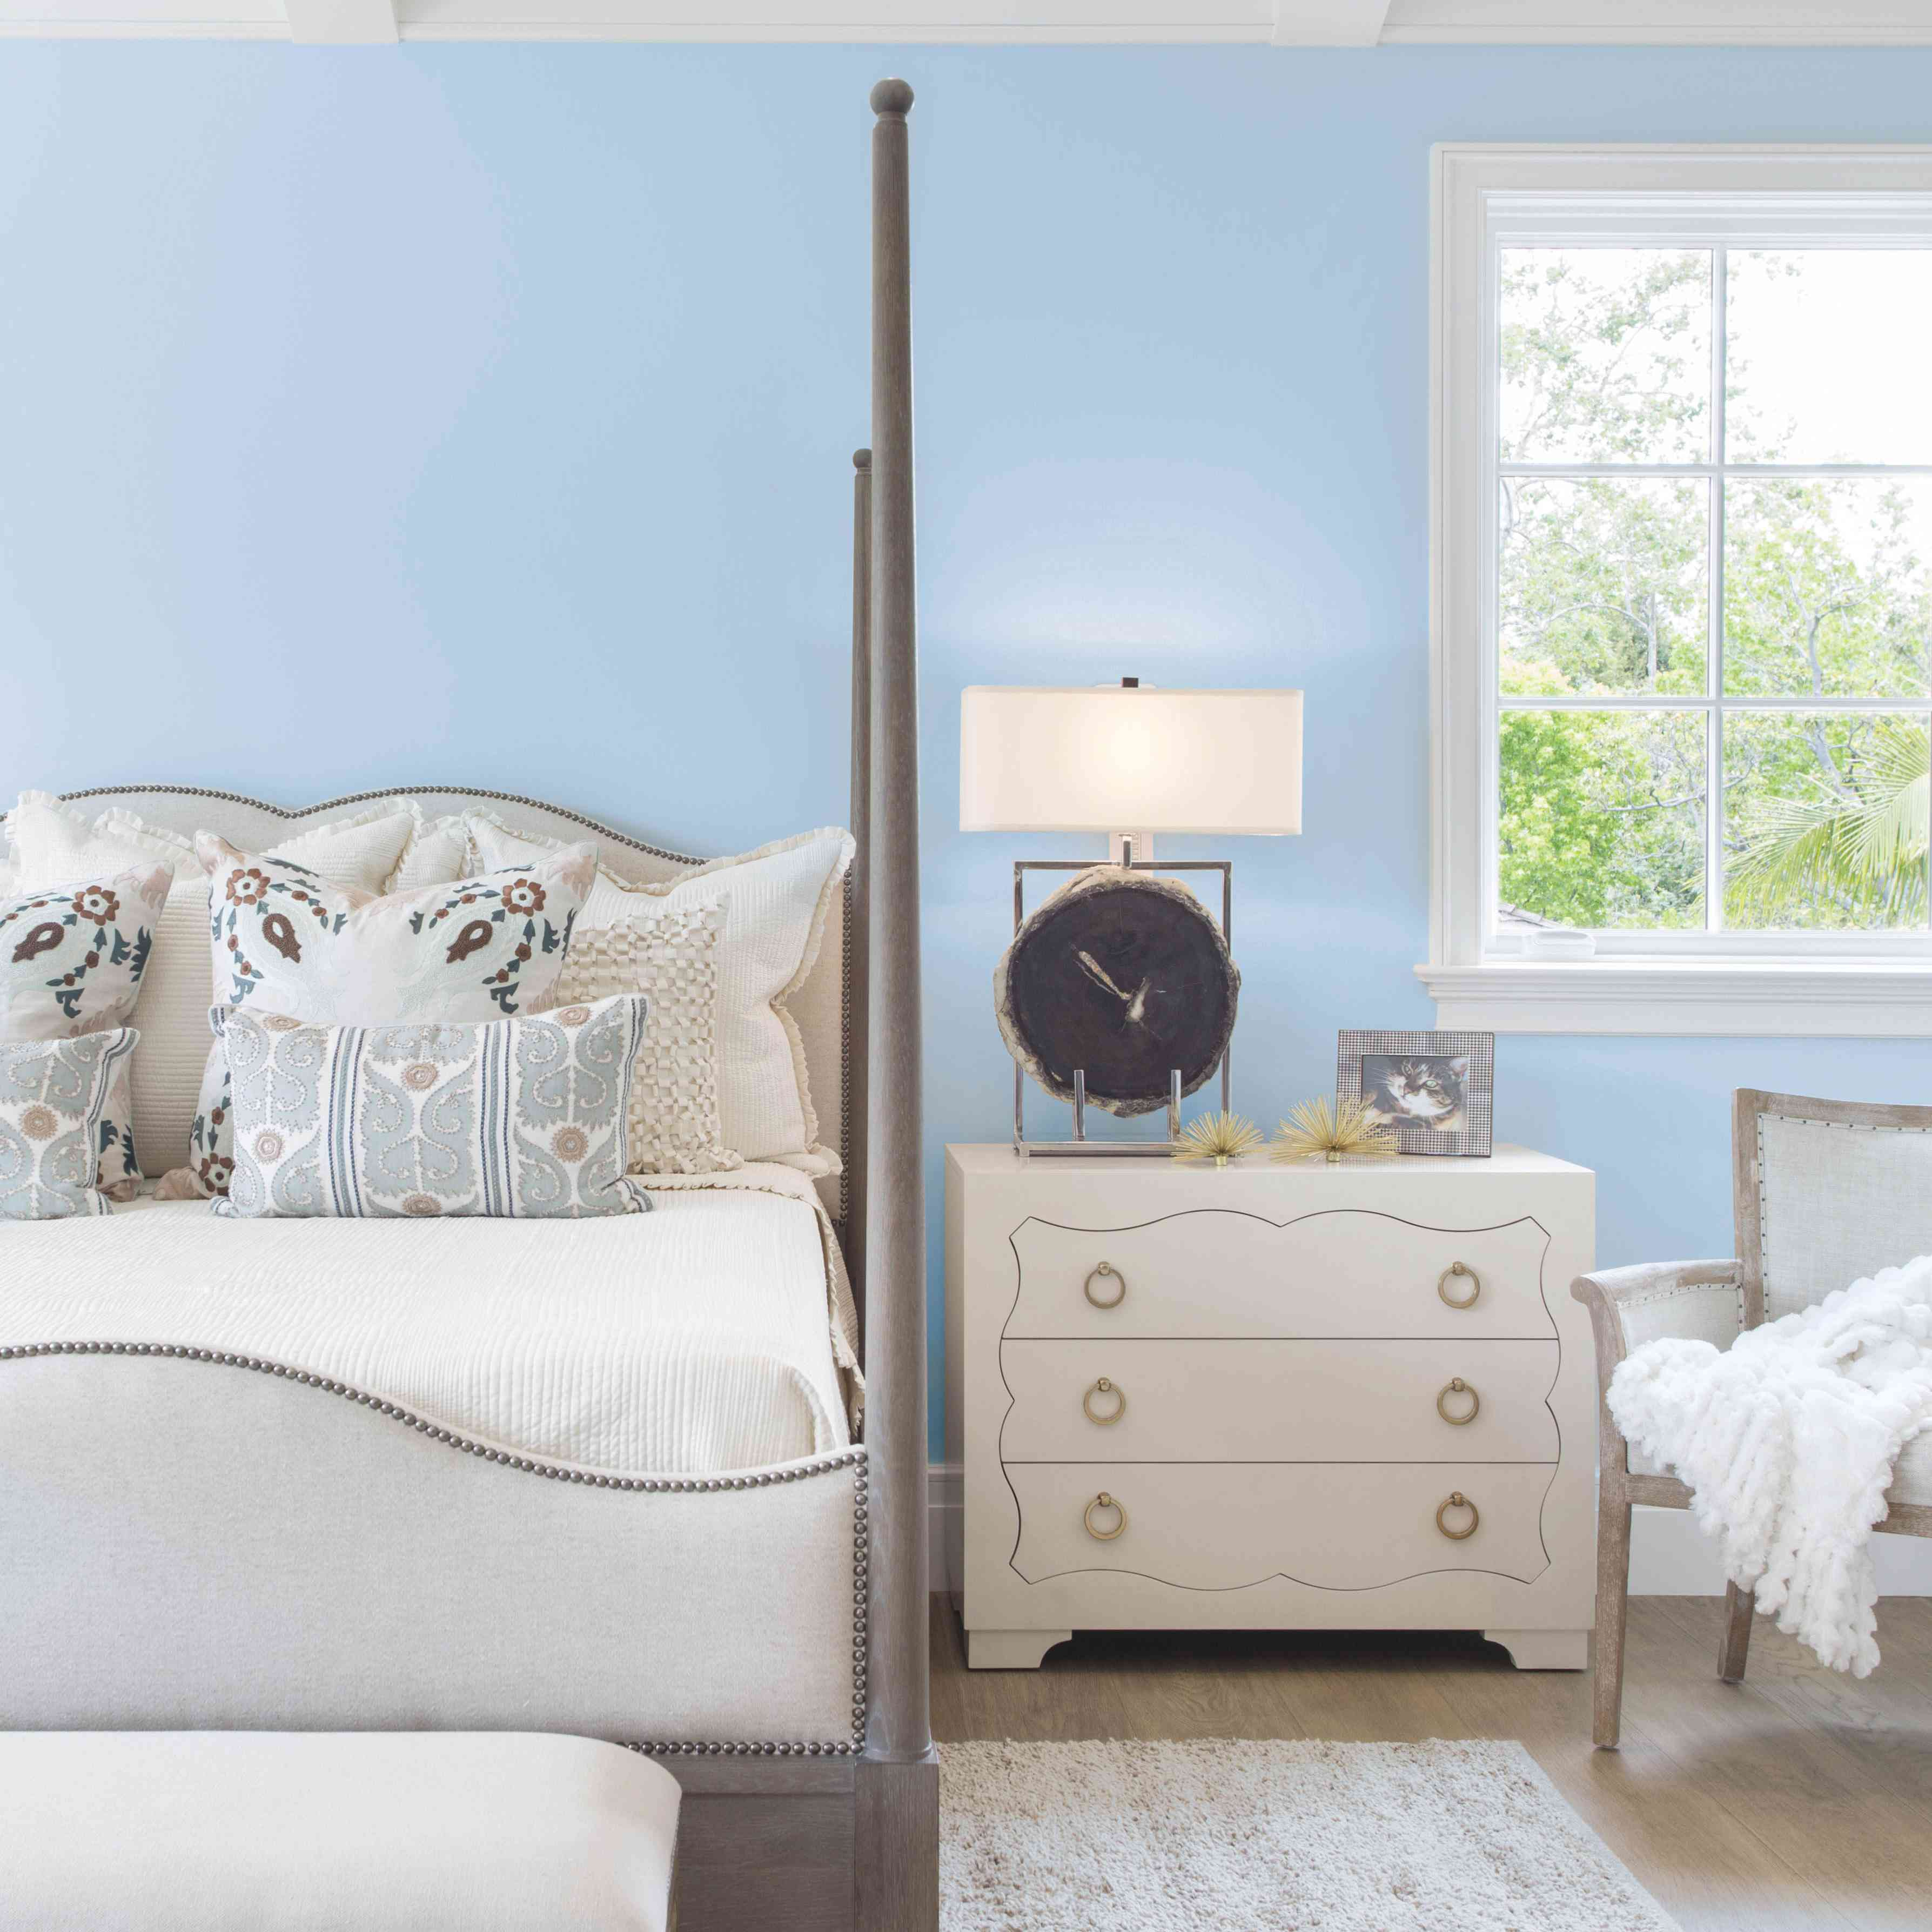 Vintage-inspired bedroom with walls painted Wild Blue Yonder.